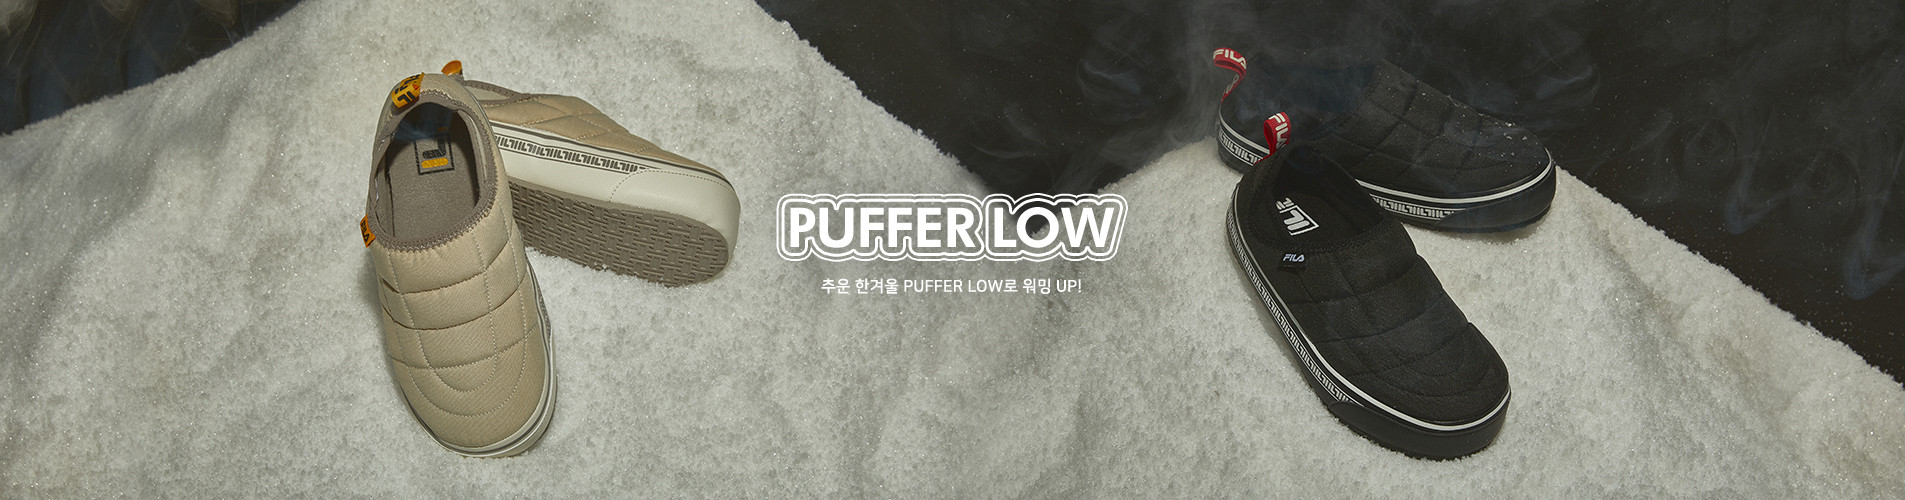 PUFFER LOW